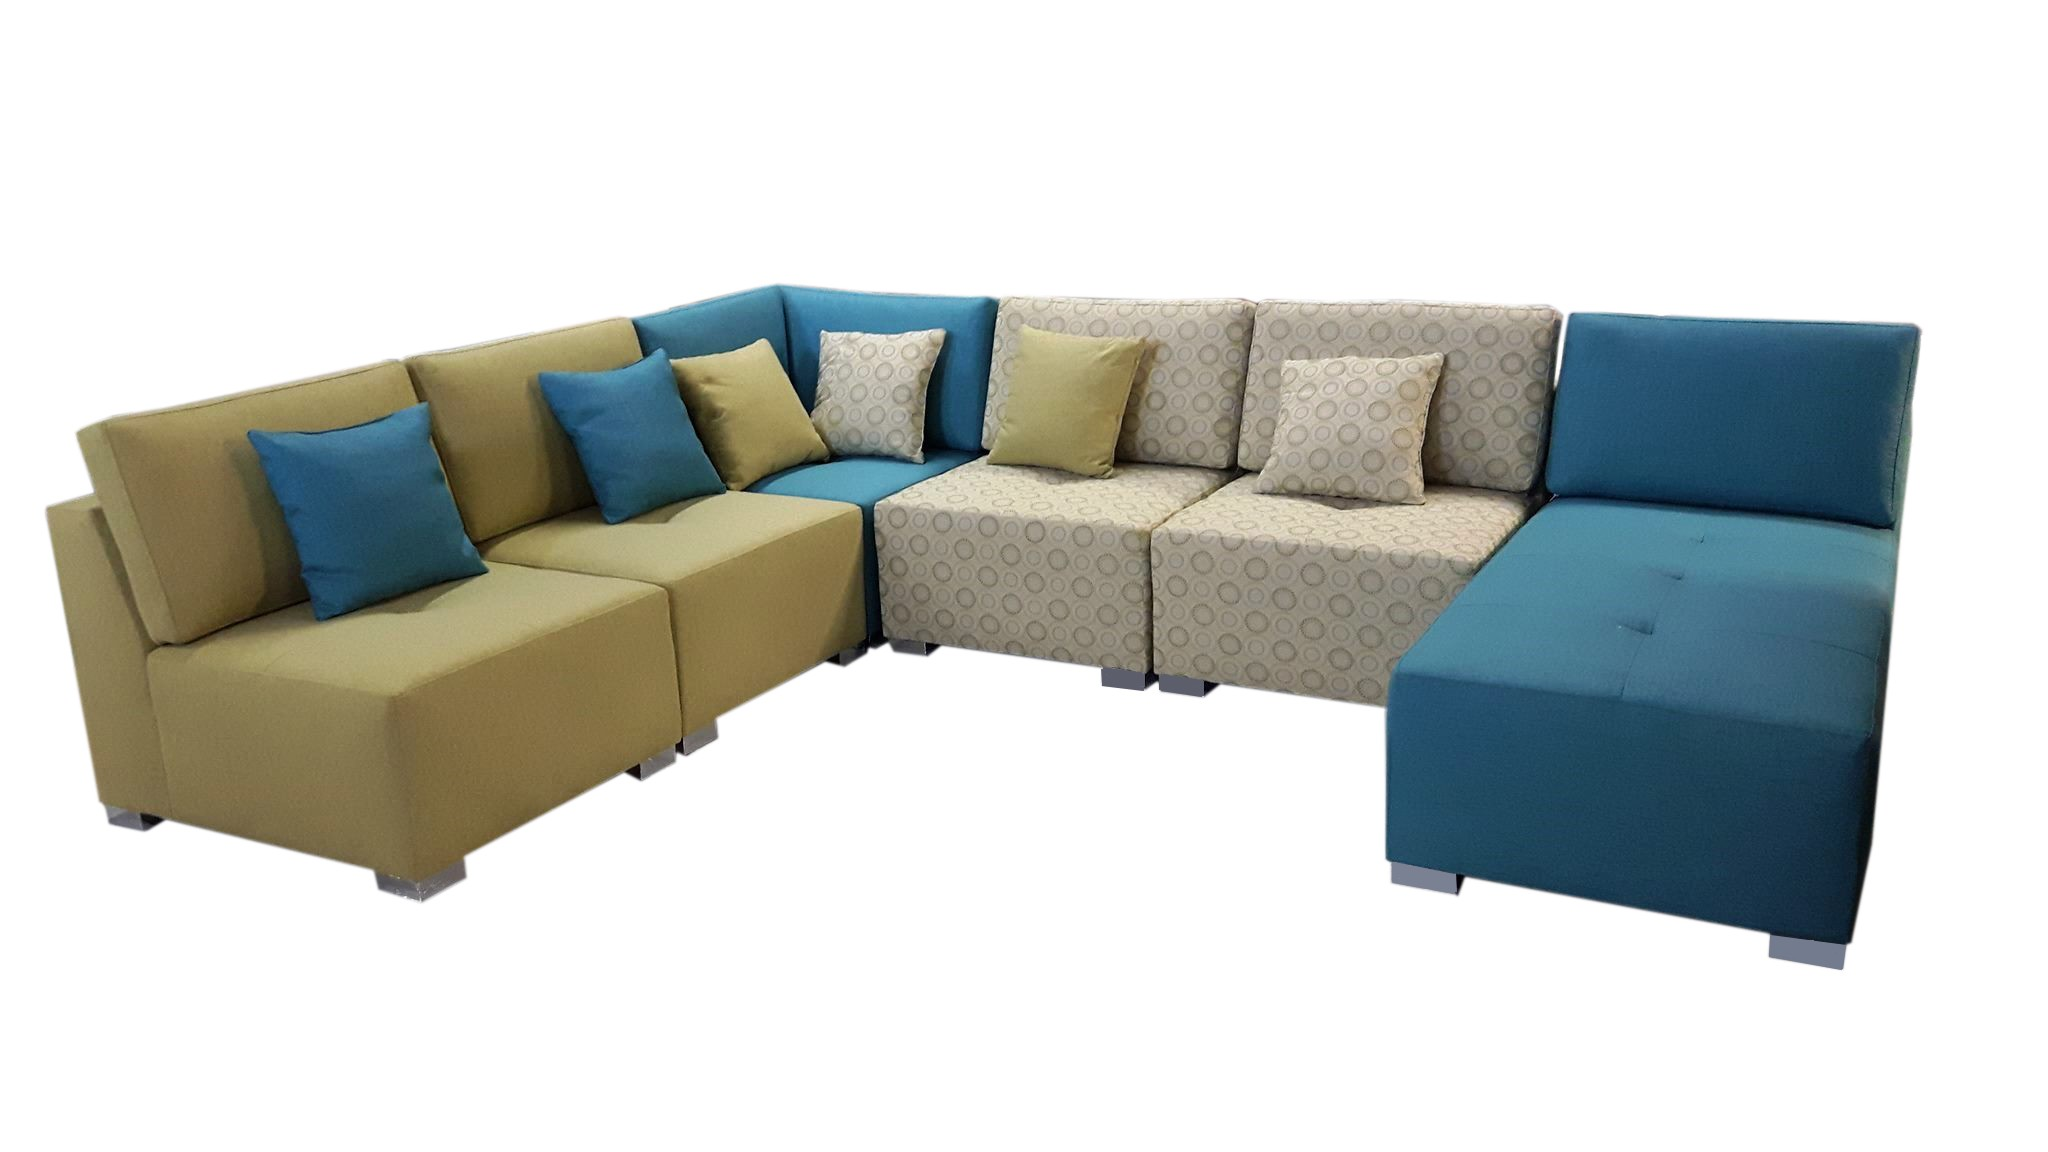 recamier sofa montreal sofa the honoroak